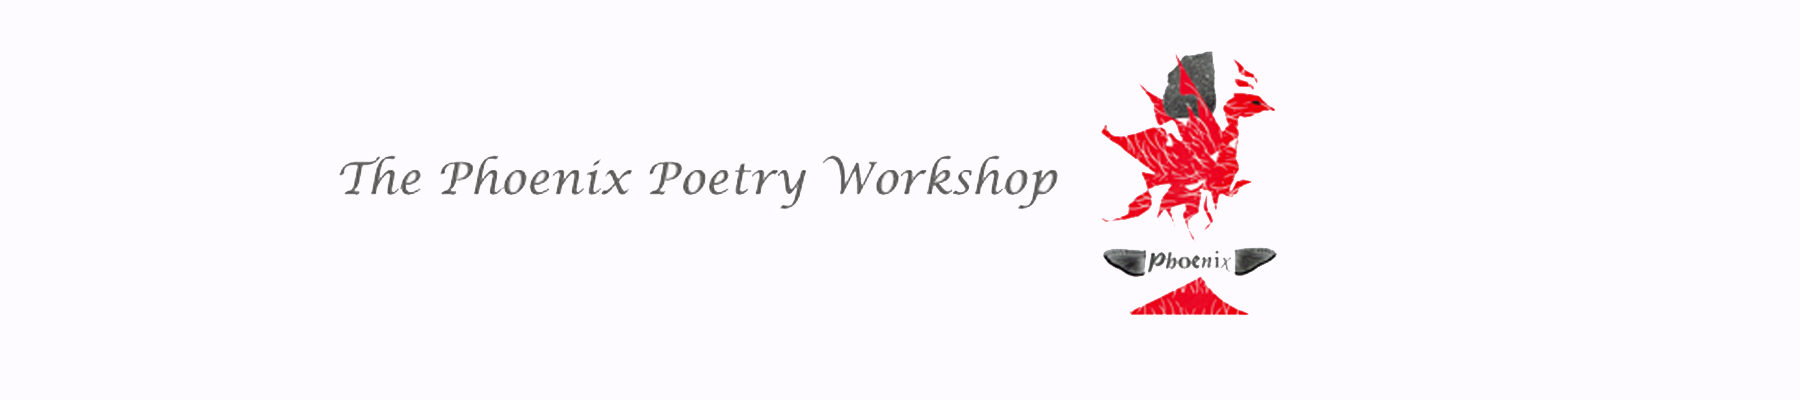 The Phoenix Poetry Workshop